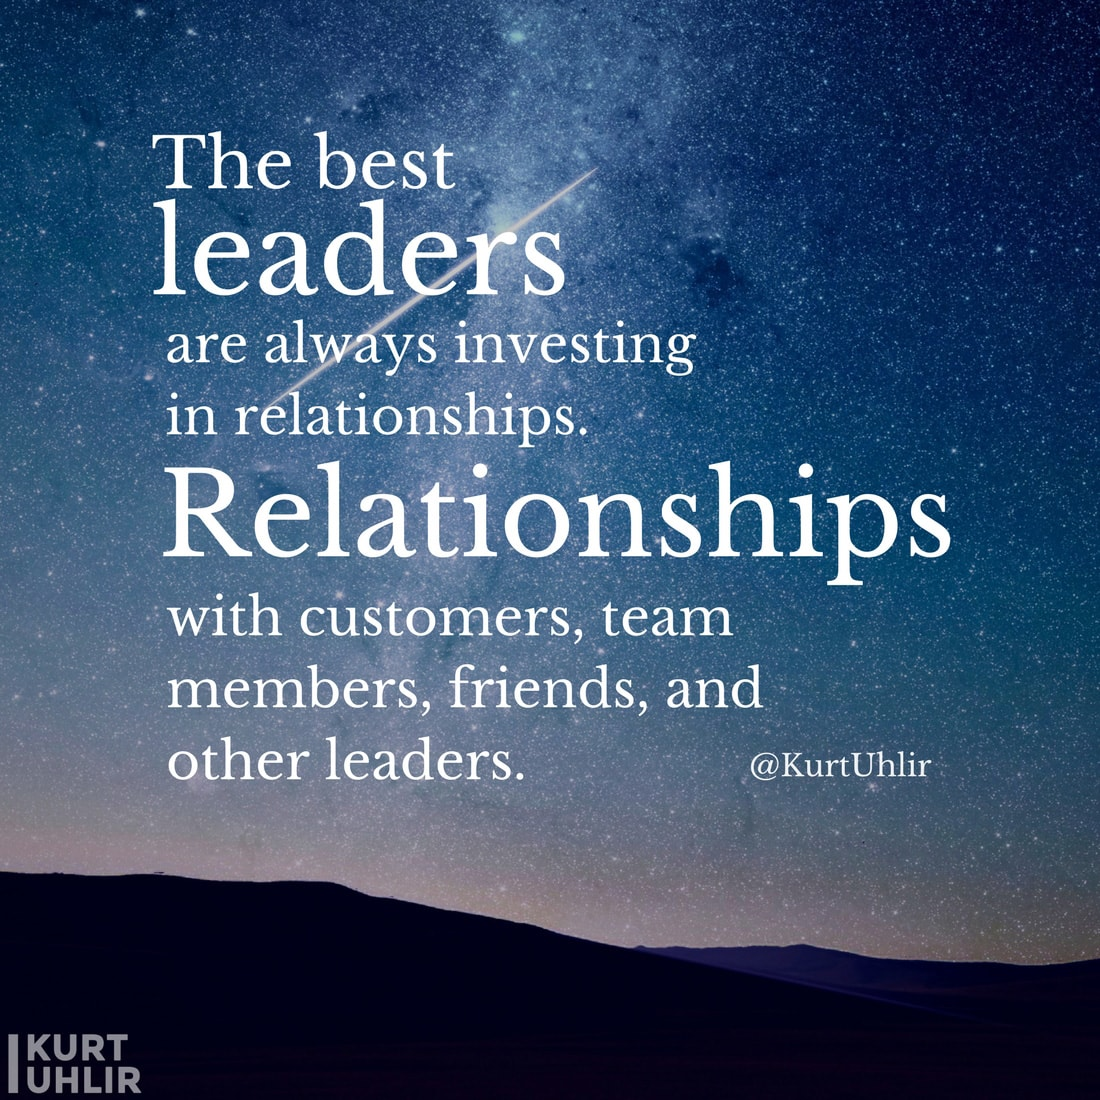 The best leaders are always investing in relationships. Relationships with customers, team members, friends, and other leaders. - Kurt Uhlir quote | Company Culture Leadership | Motivation | Entrepreneurship